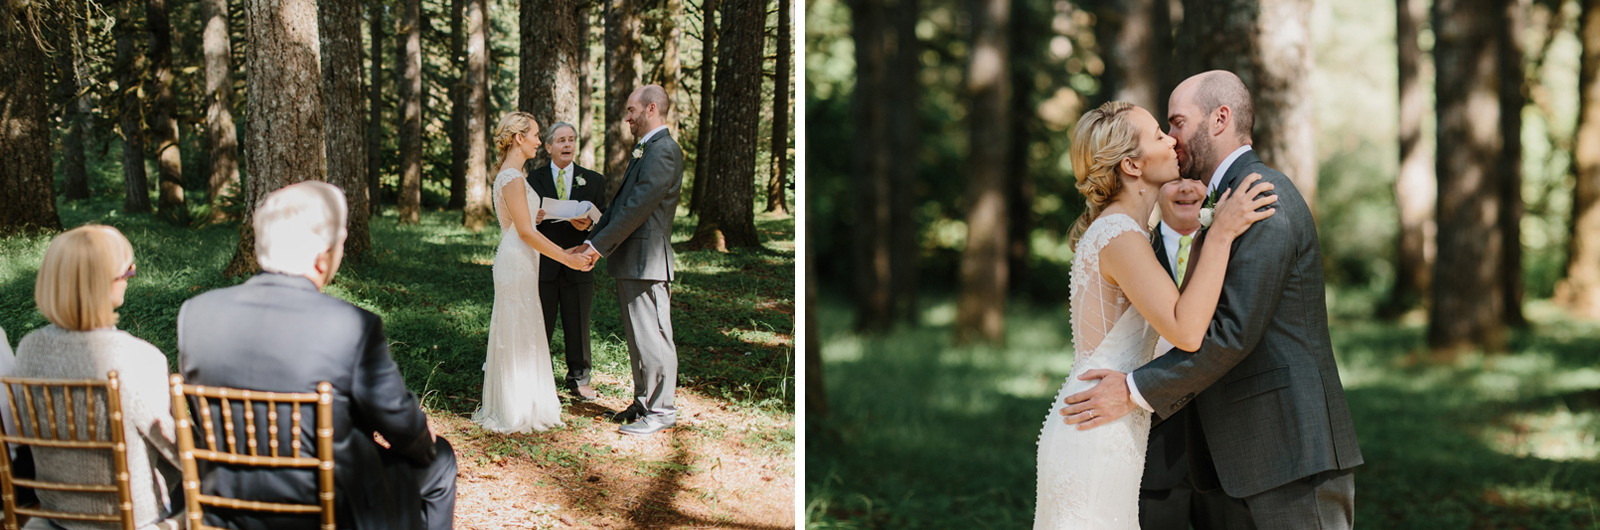 Silver Falls State Park Wedding by Anna Jaye Photography 051